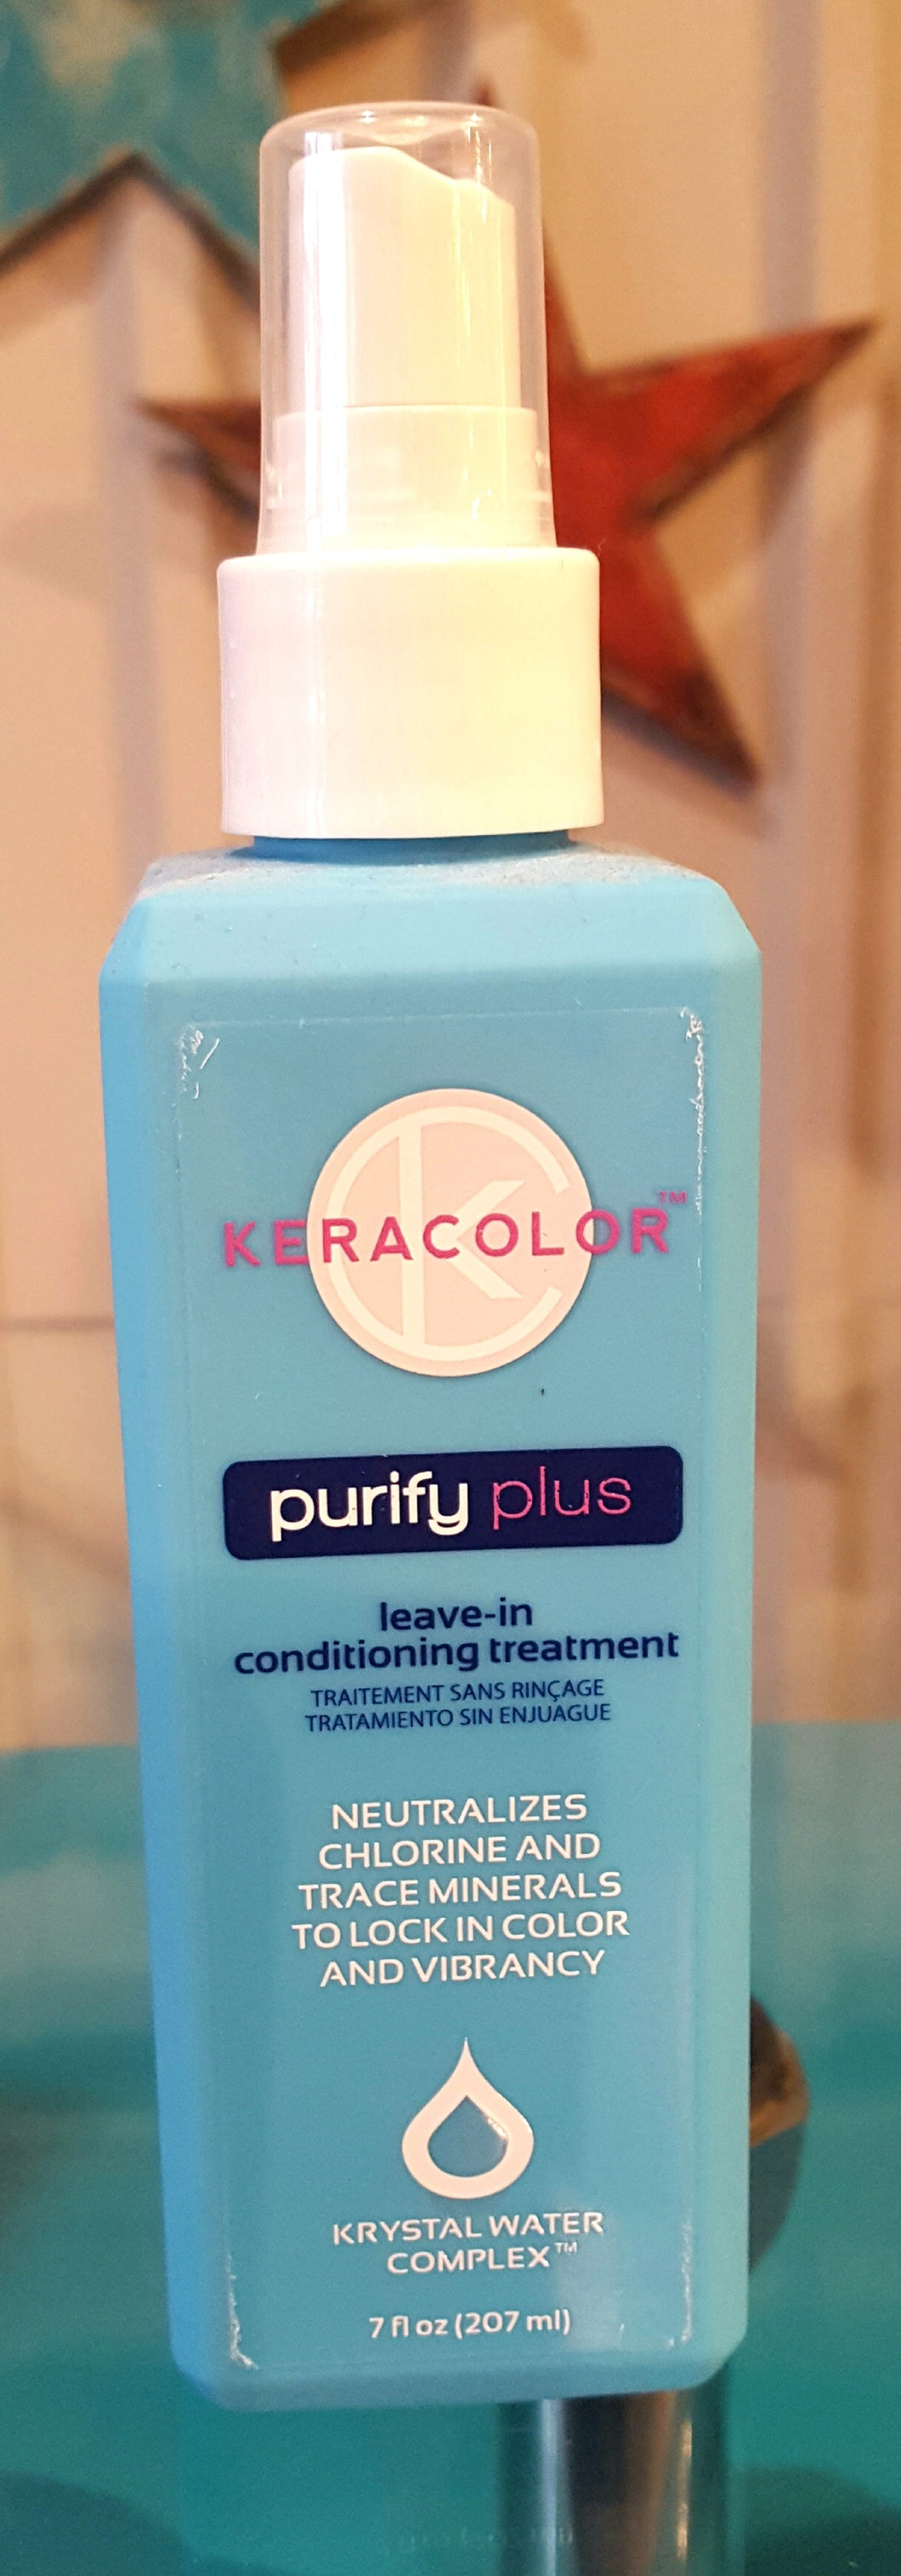 Keracolor Purify Leave In Conditioning Treatment